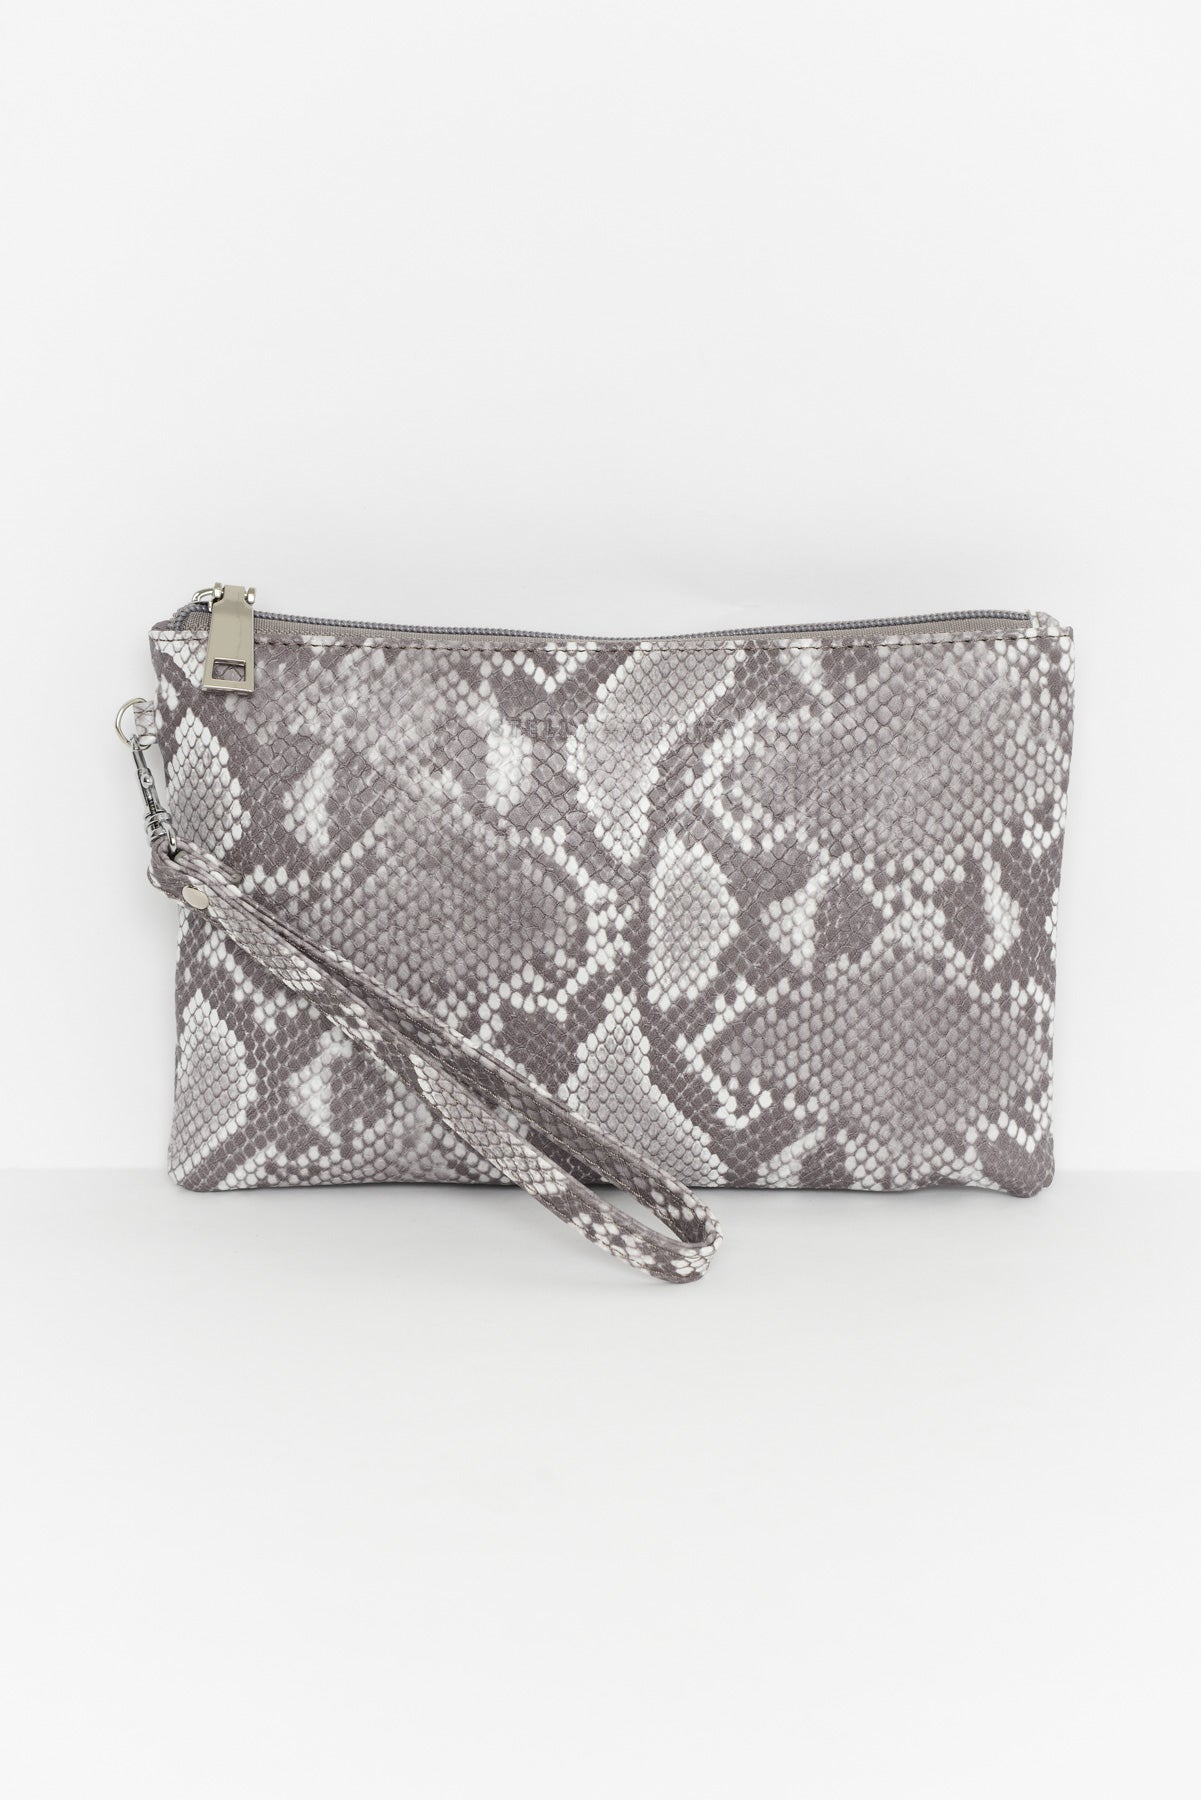 Grey Snake Lulu Pouch - Blue Bungalow